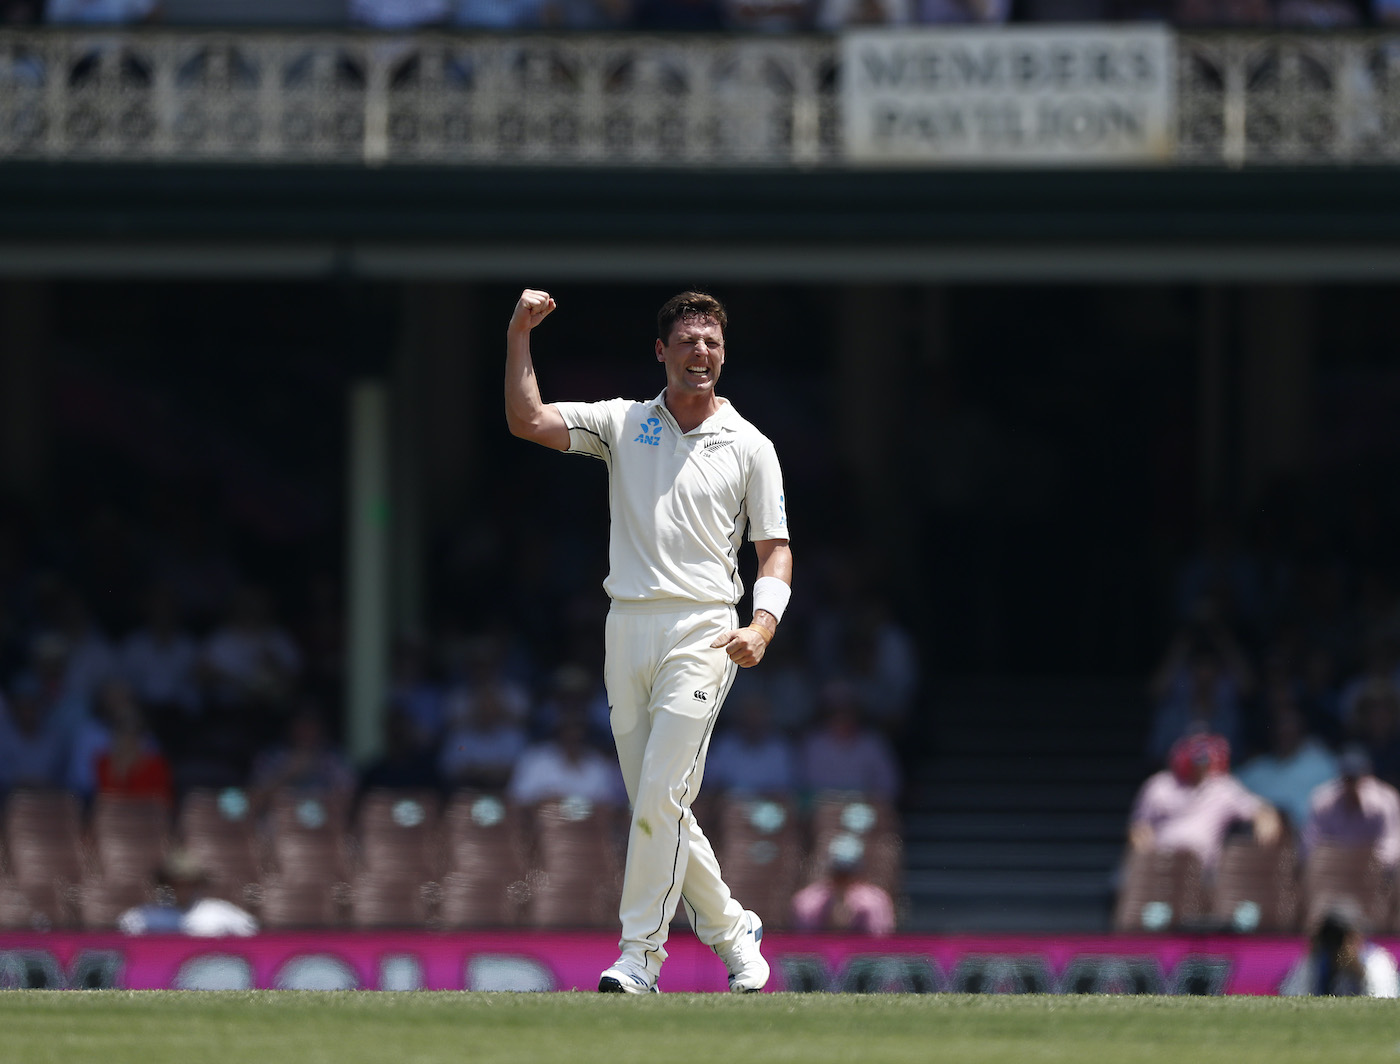 Matt Henry replaces injured Neil Wagner for second Test